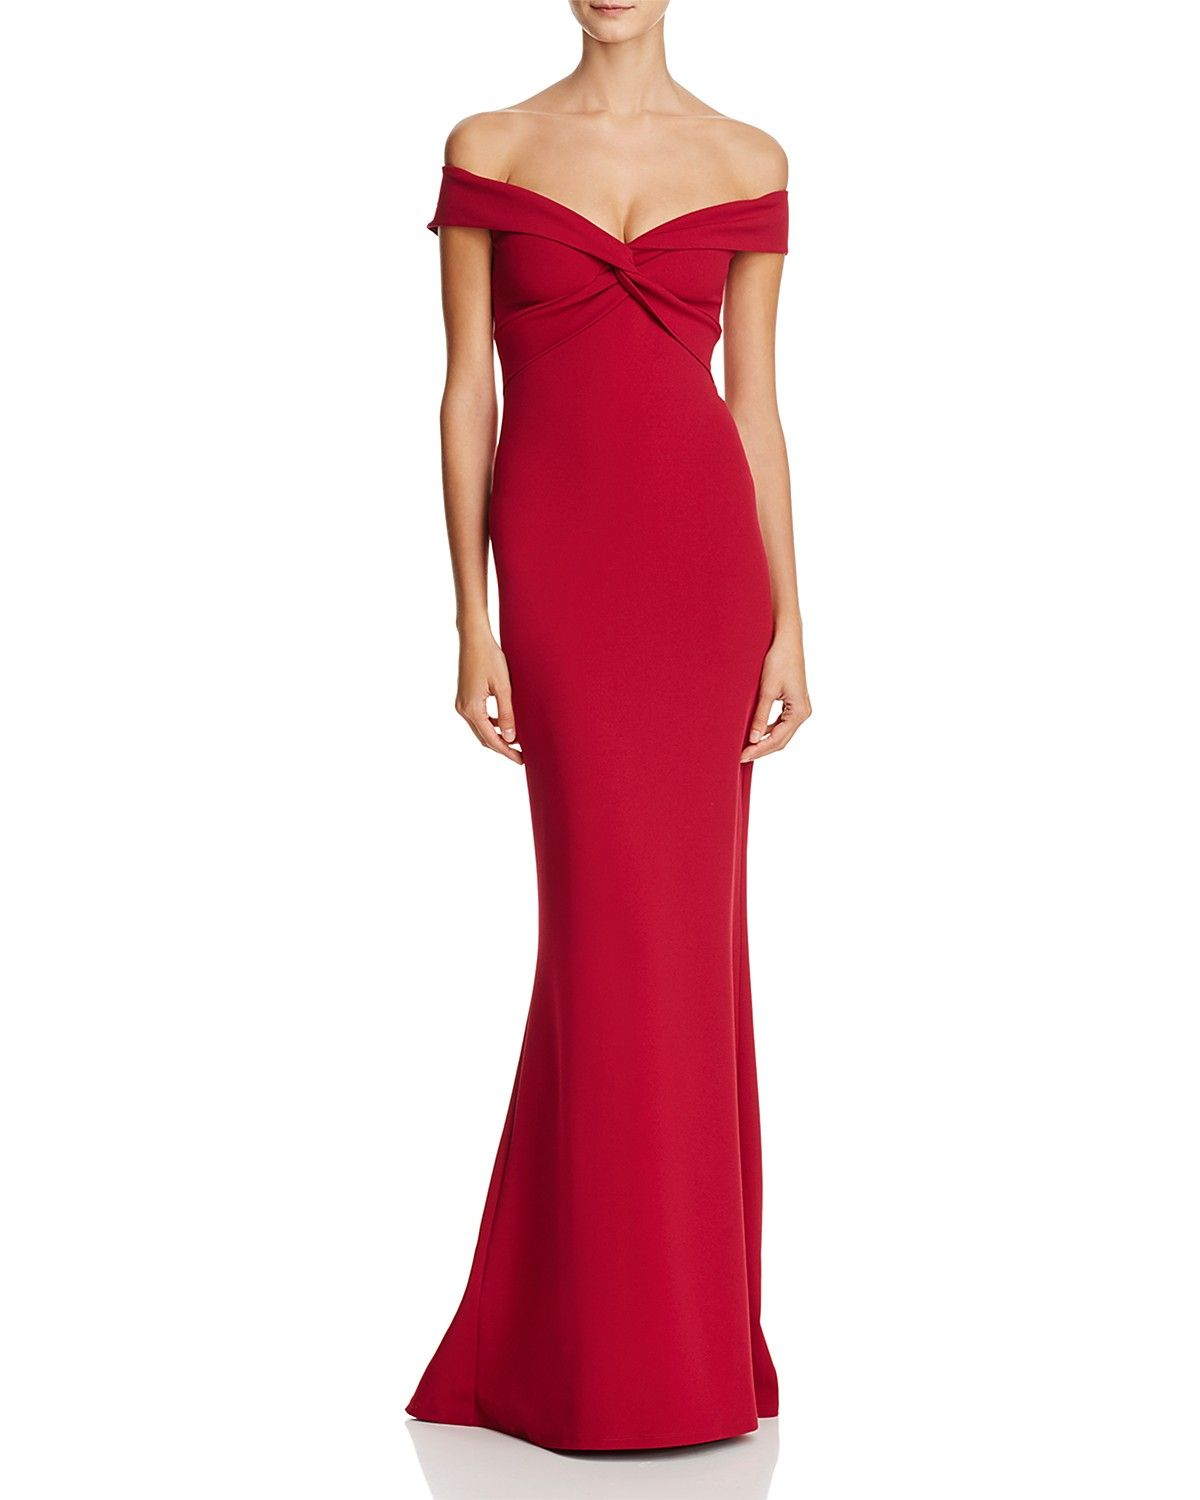 Nookie Dolly Off The Shoulder Gown Women Dresses Evening Formal Gowns Bloomingdale S Gowns Evening Gowns Formal Red Prom Dress [ 1500 x 1200 Pixel ]